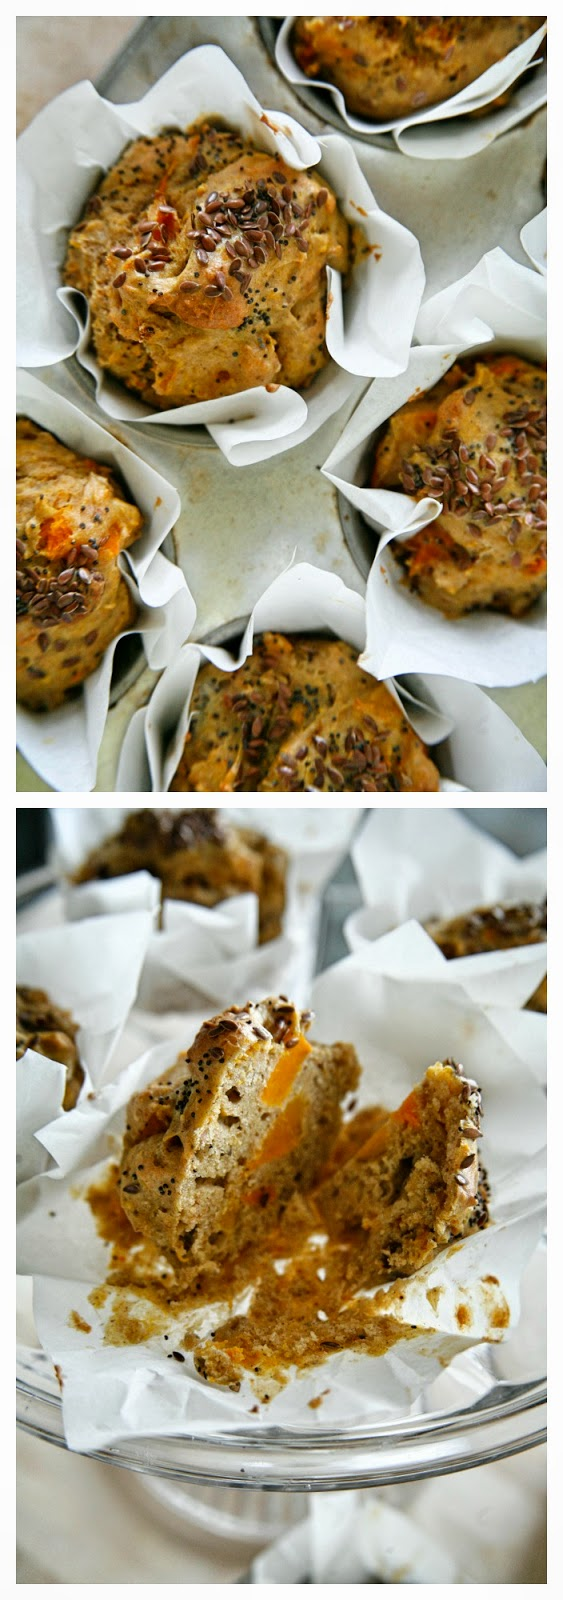 Savoury muffin recipe